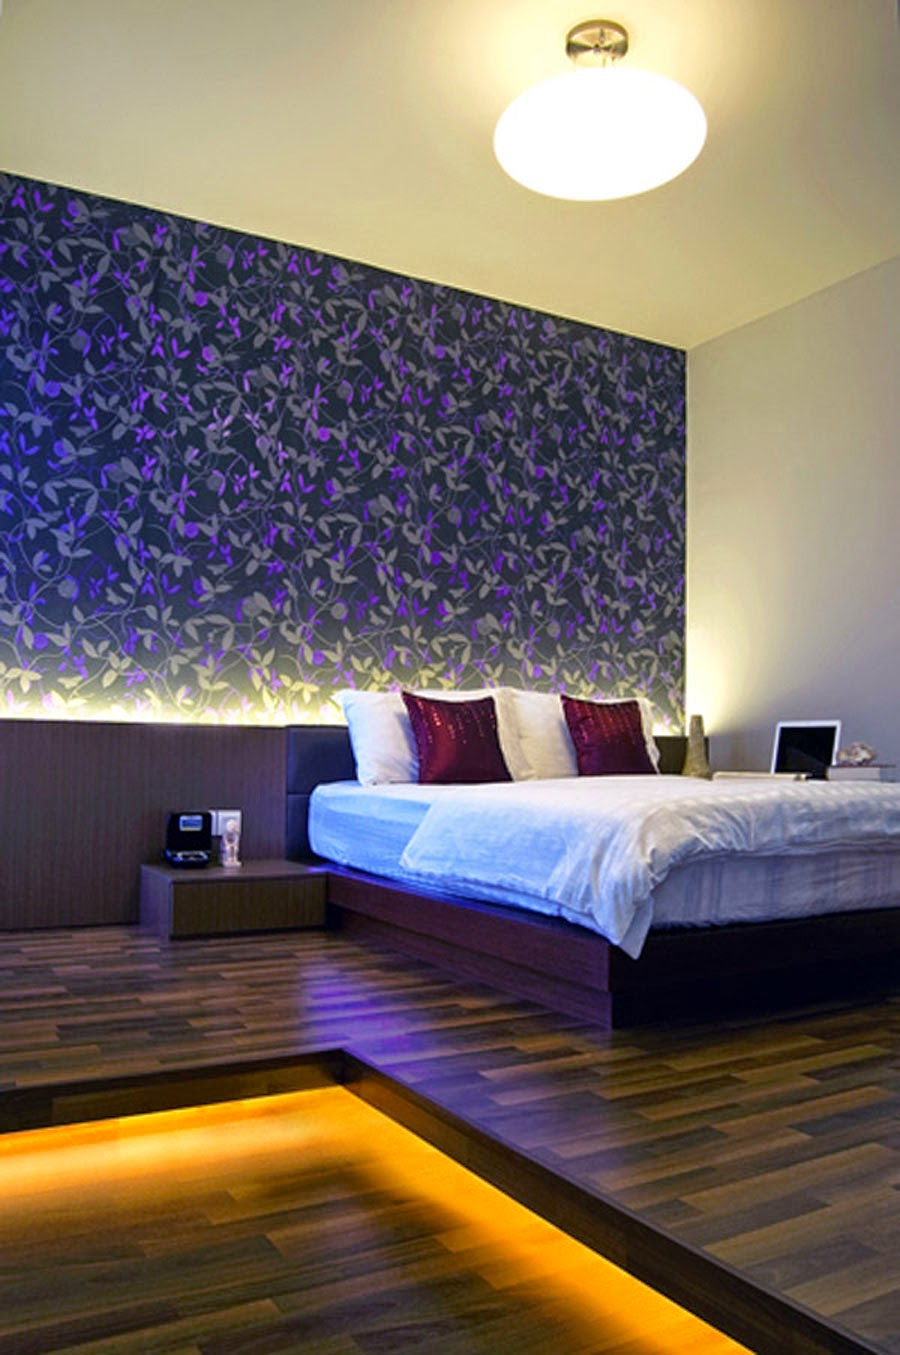 Small bedroom lighting ideas the interior designs for Small bedroom lighting ideas